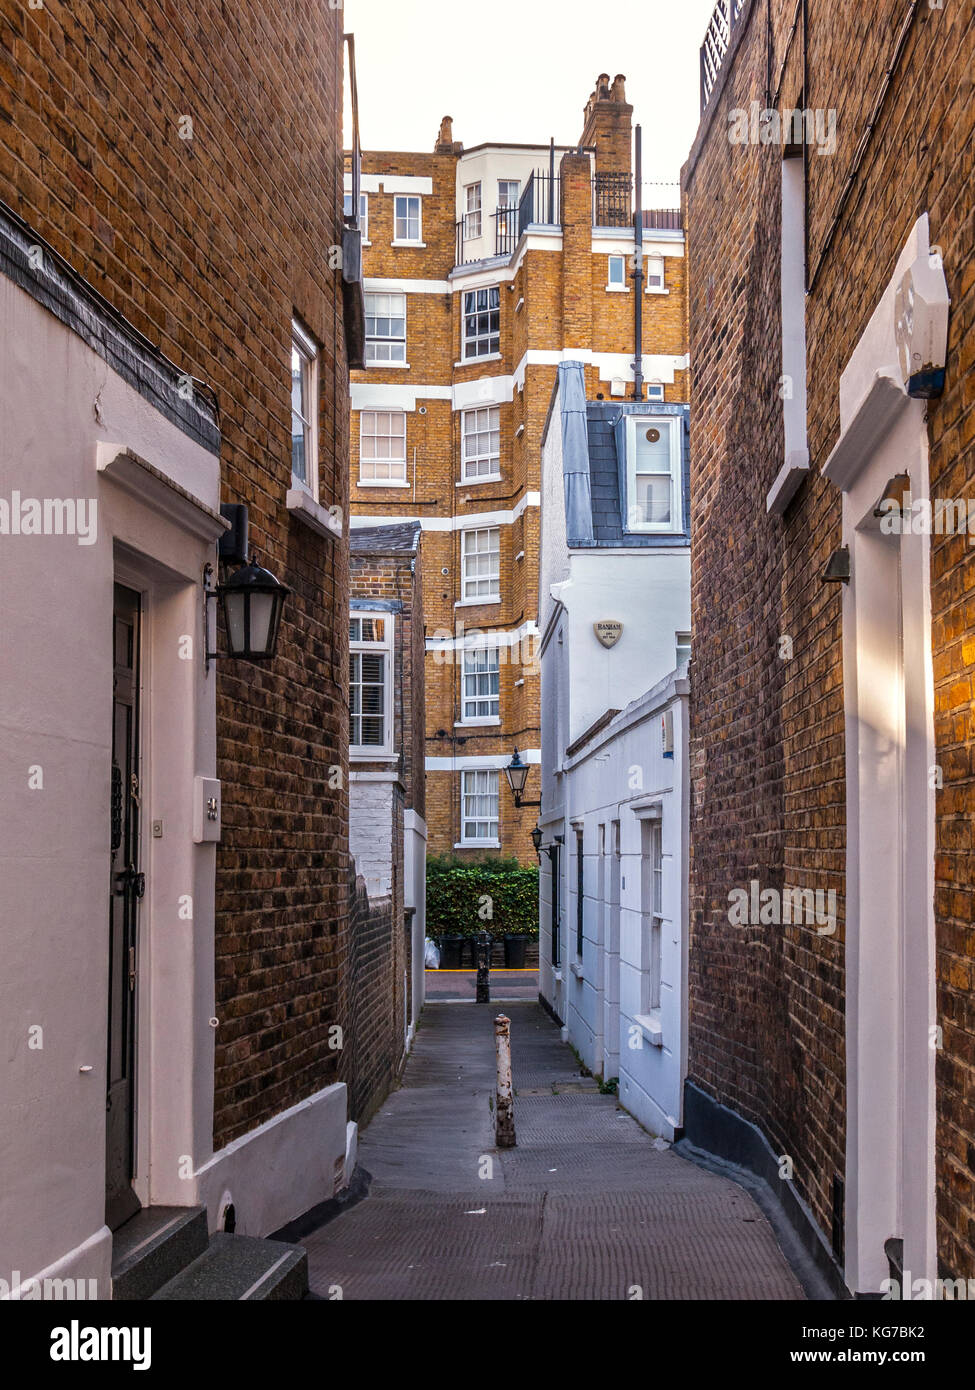 Richard's Place, Chelsea, London - Stock Image